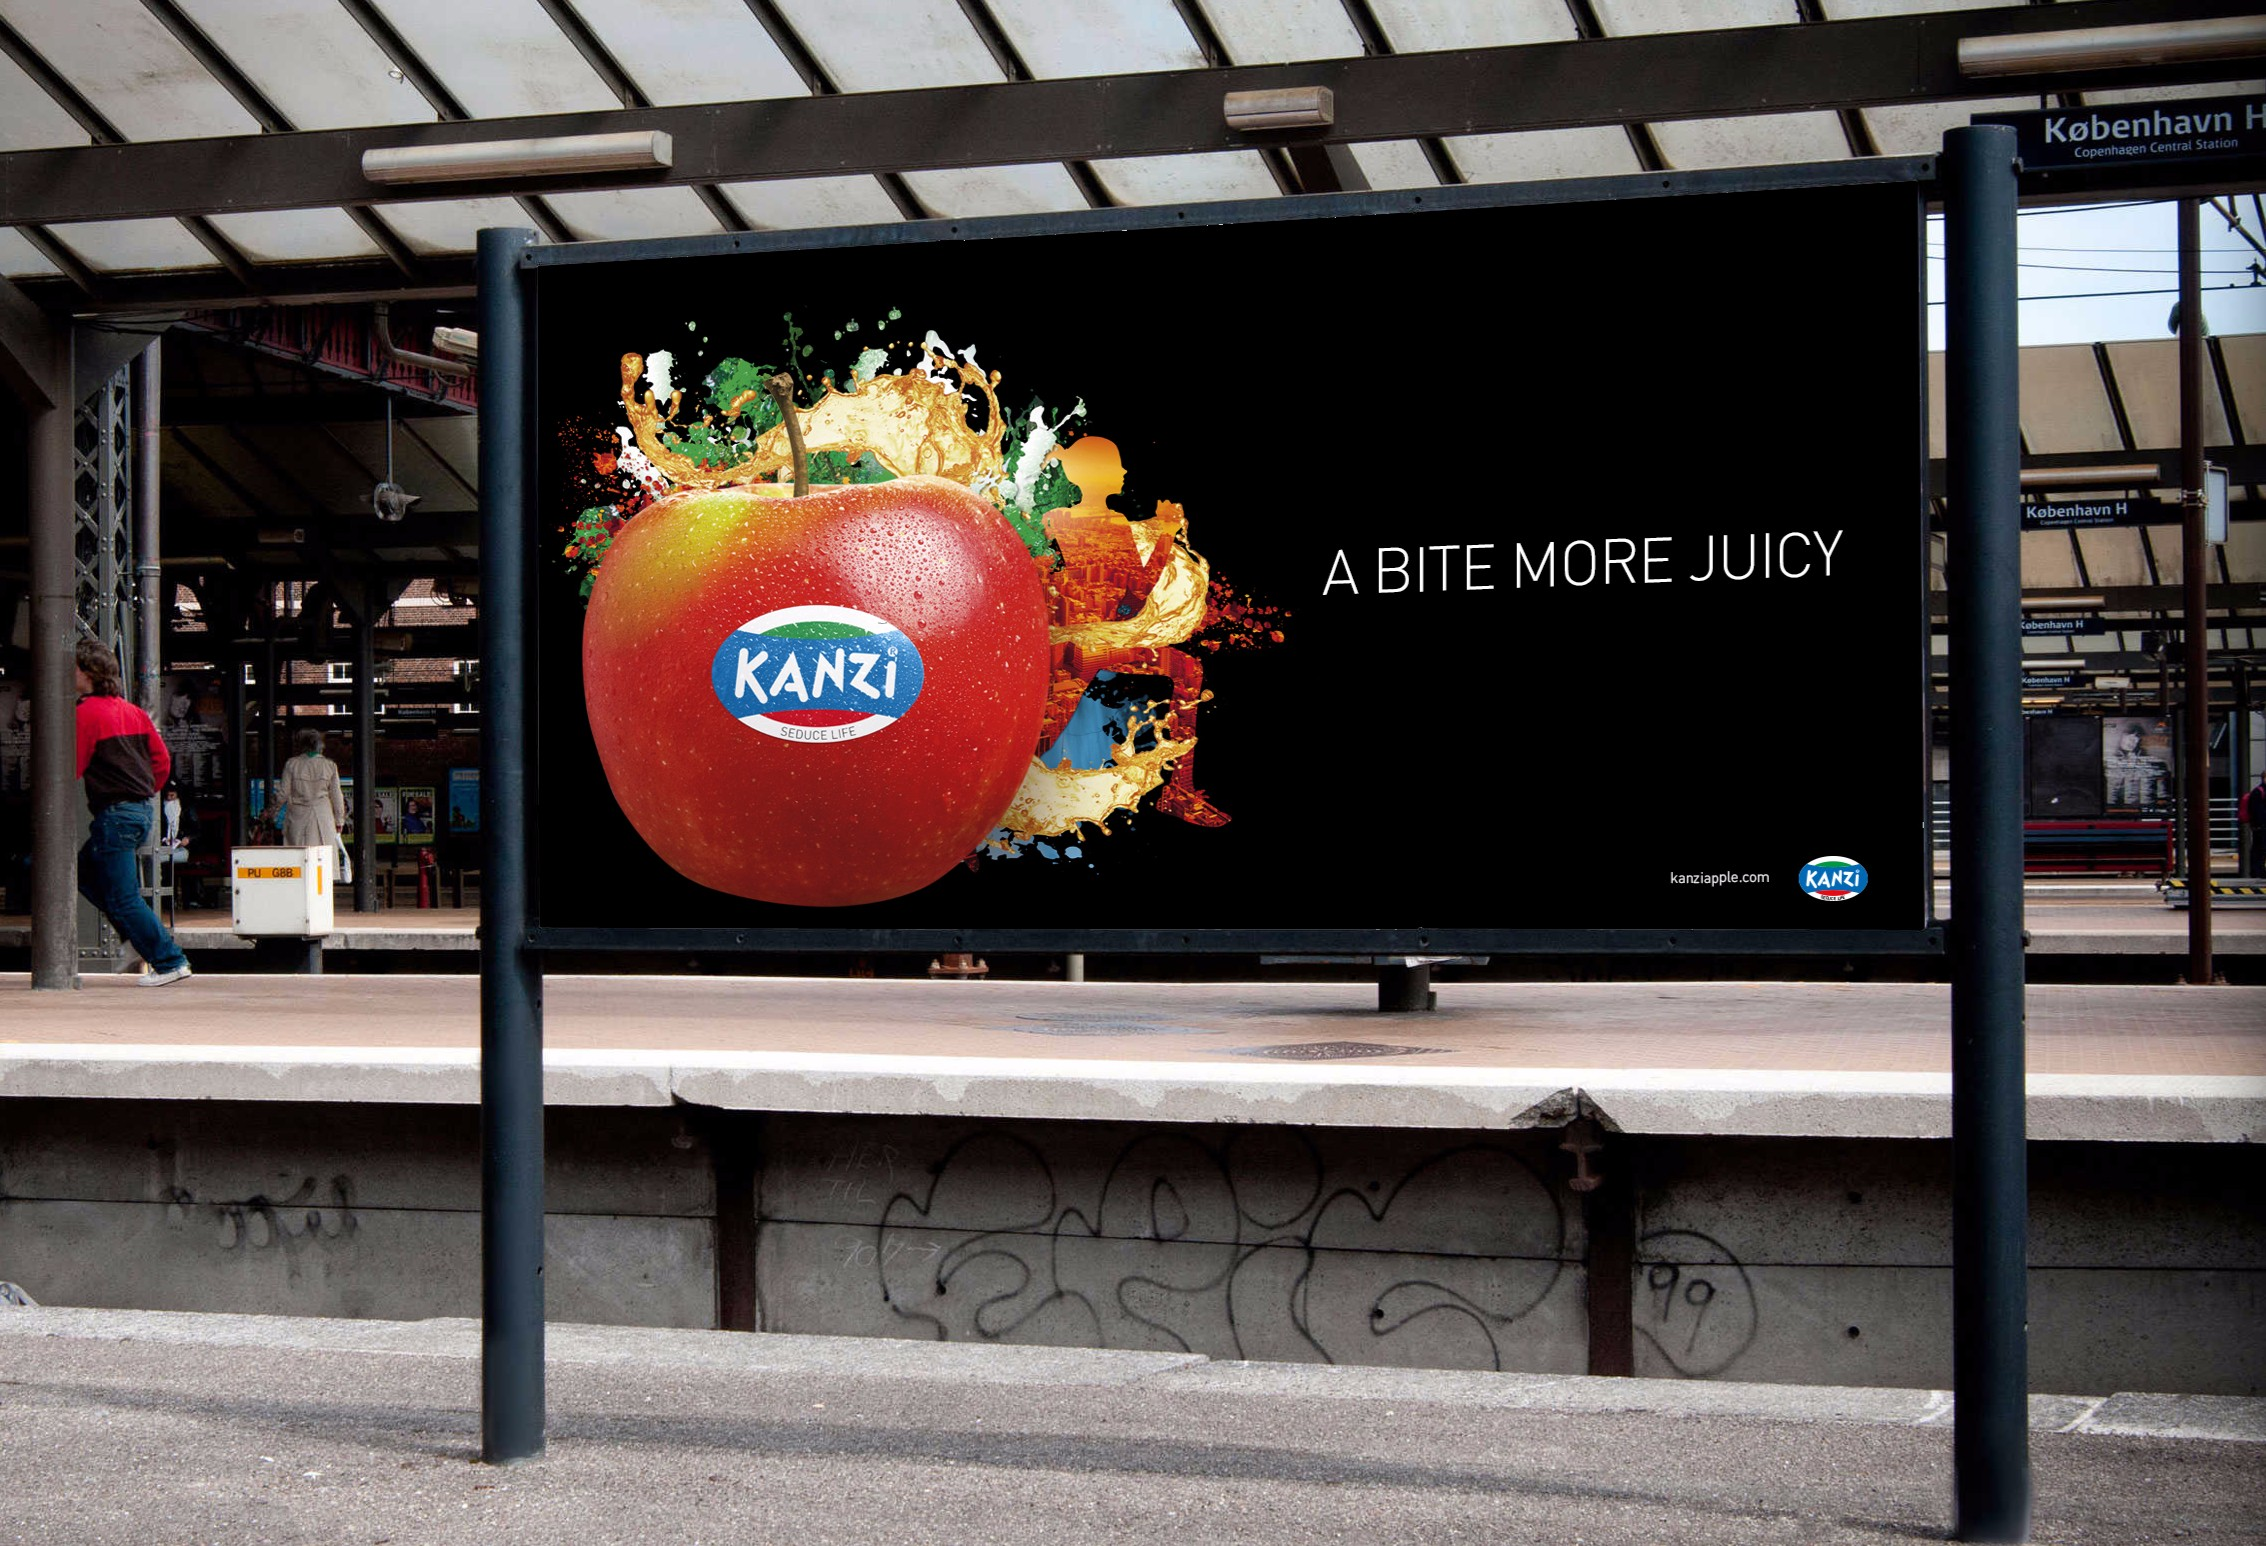 Kanzi® apples launches season with a new consumer campaign - Seduce Life